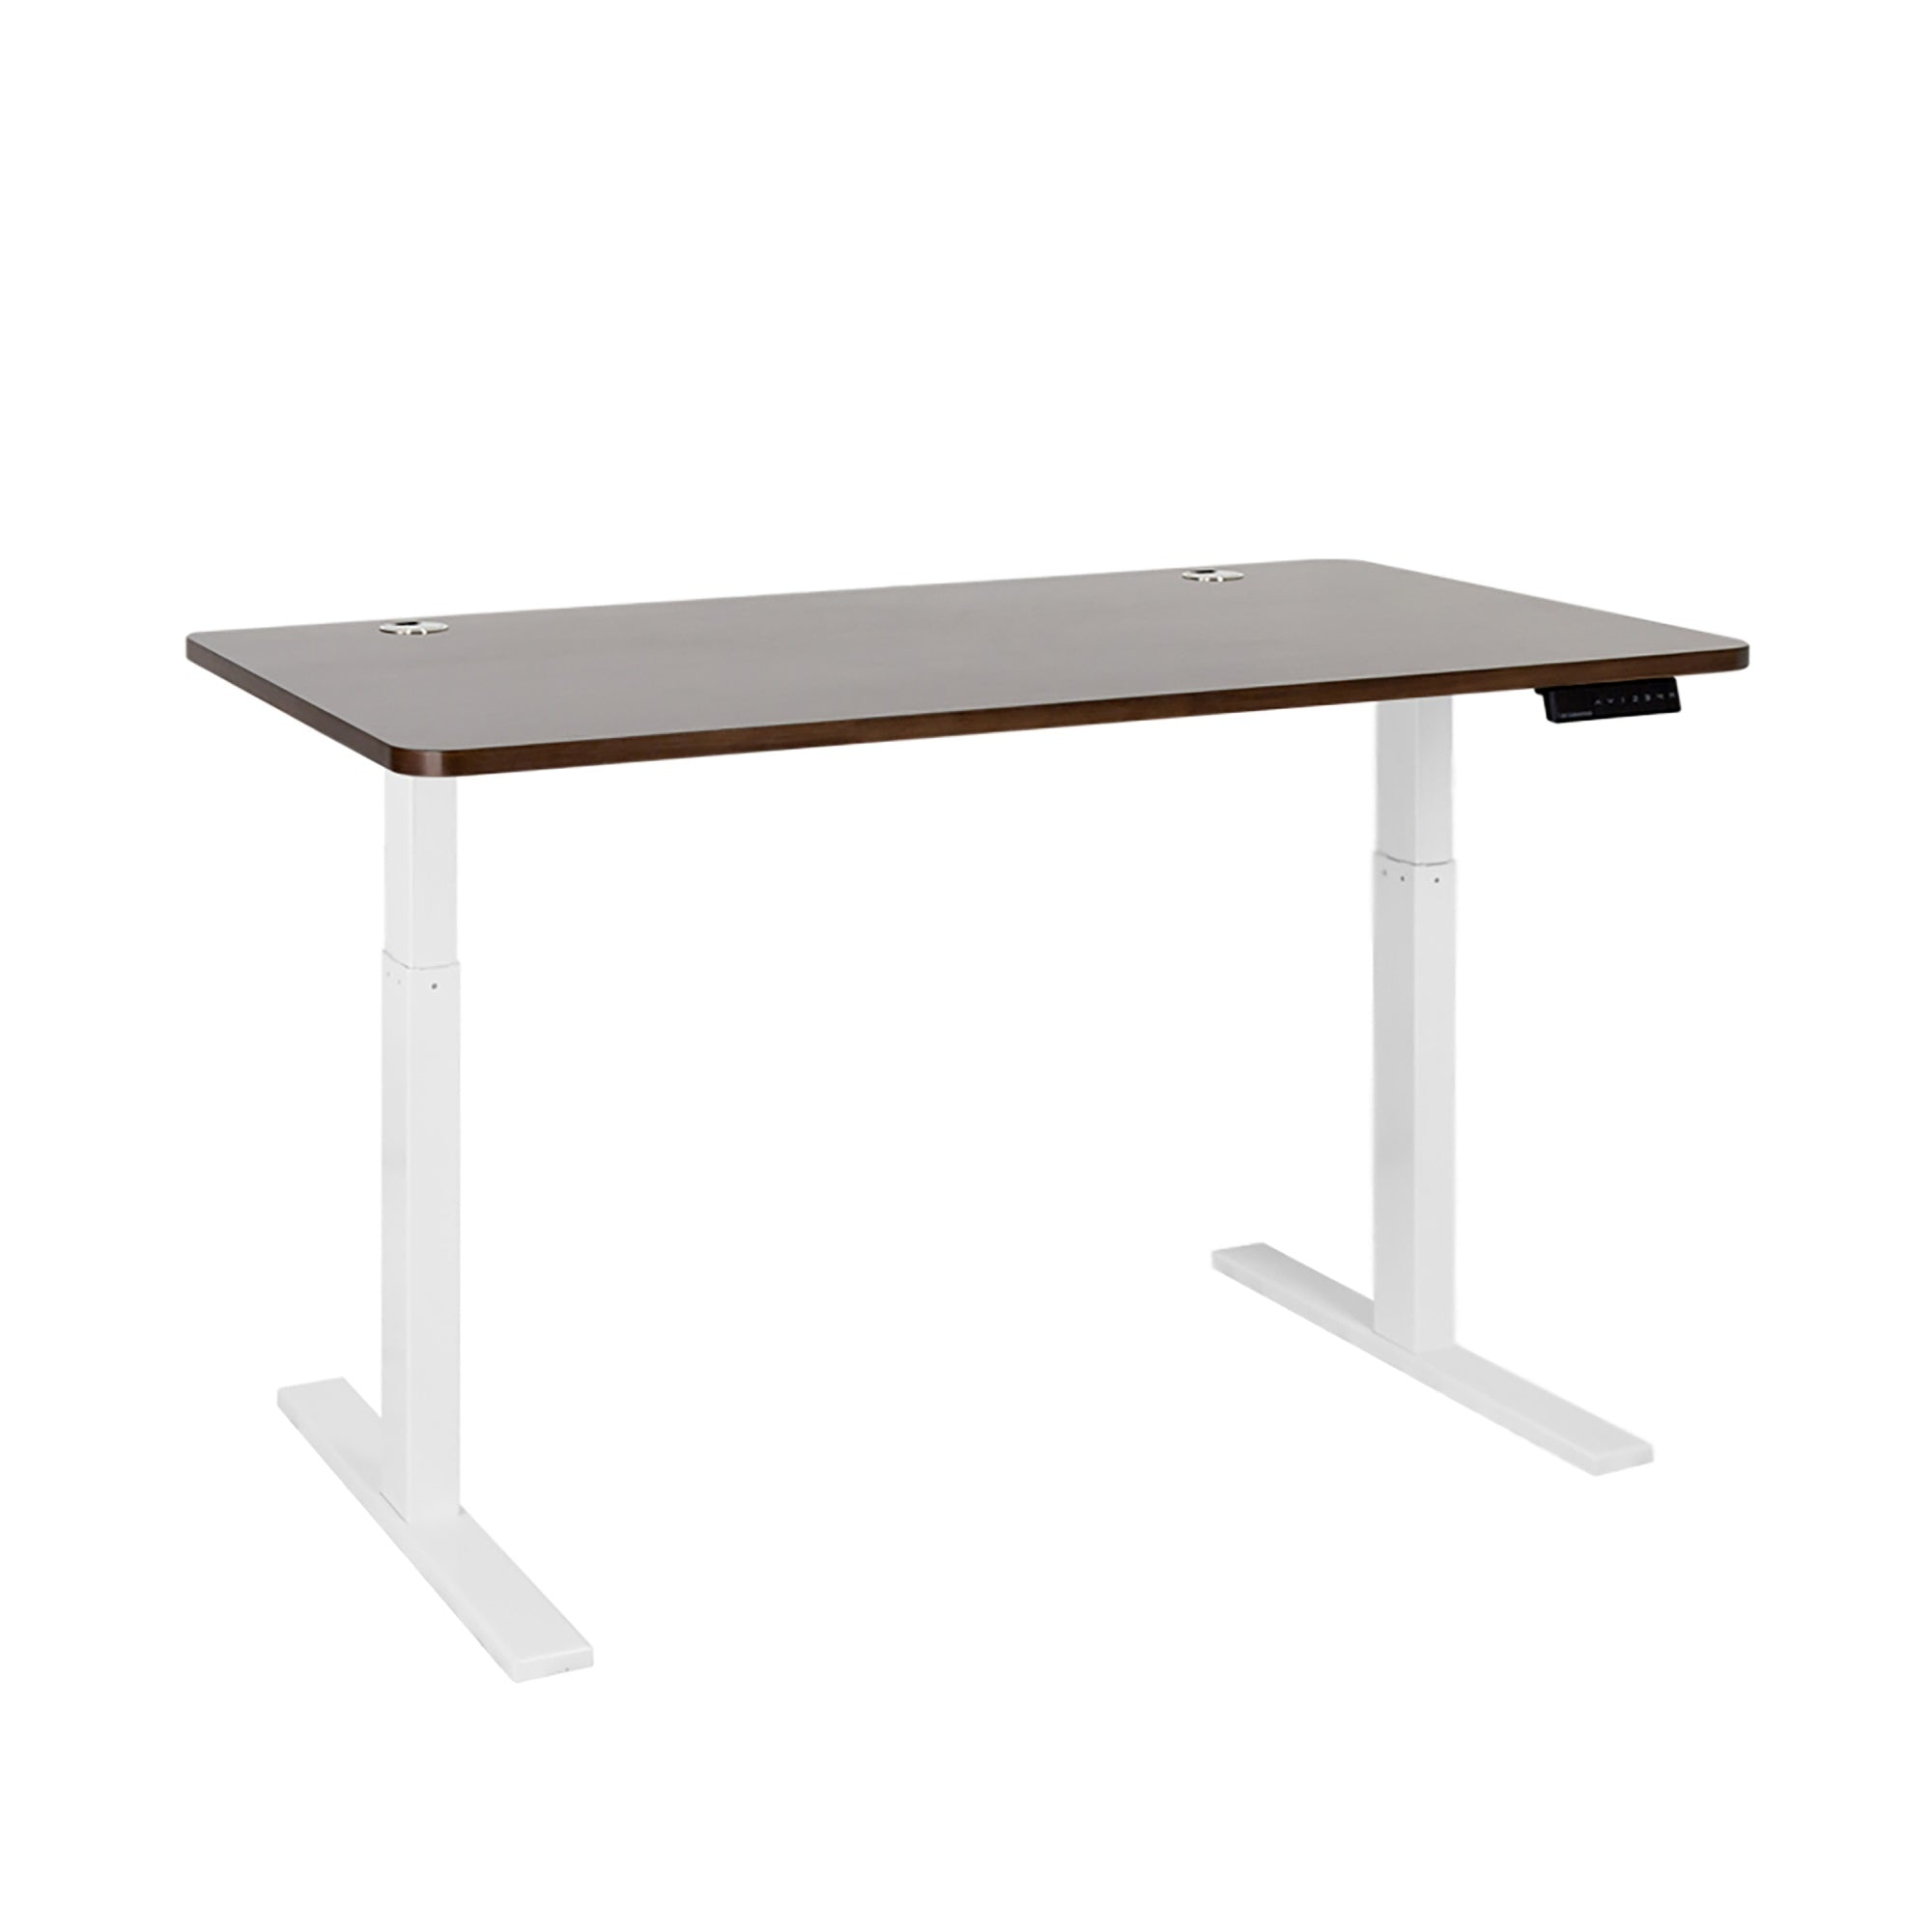 "ActiveDesk Standing Desk with Electric Adjustble Height 28 - 46 inches, White Frame - Walnut Classic Table Top size 53"" x 30"""